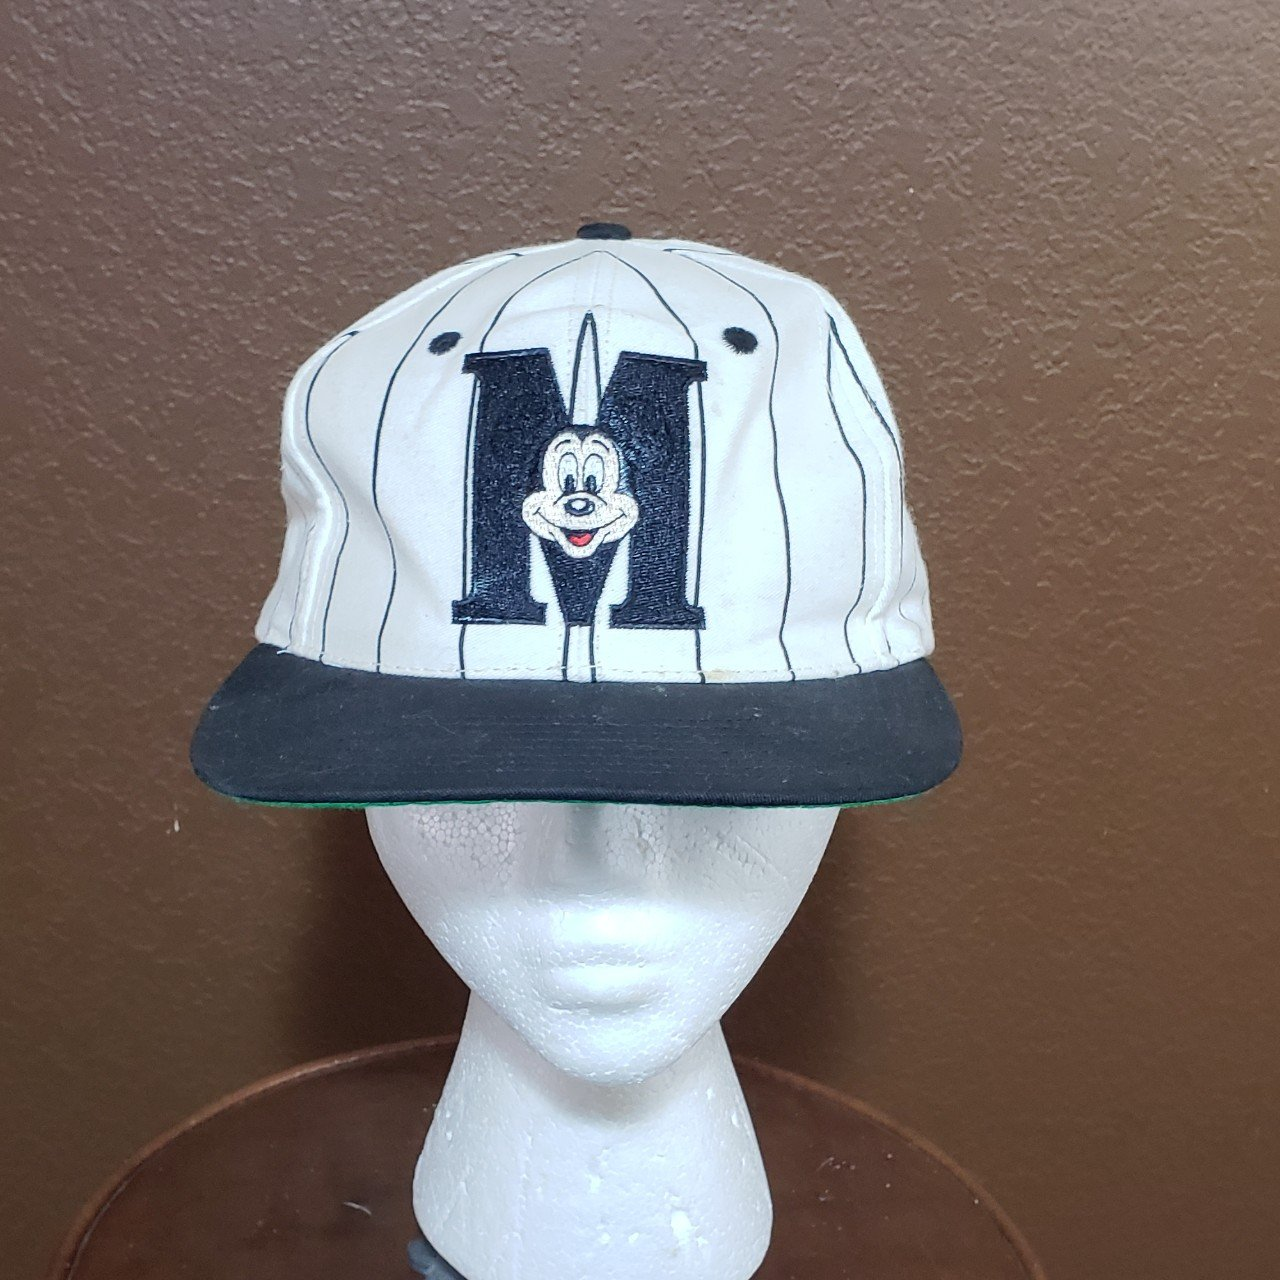 Vintage Mickey mouse spell out snapback white black hat. the - Depop b417bd98f0a5